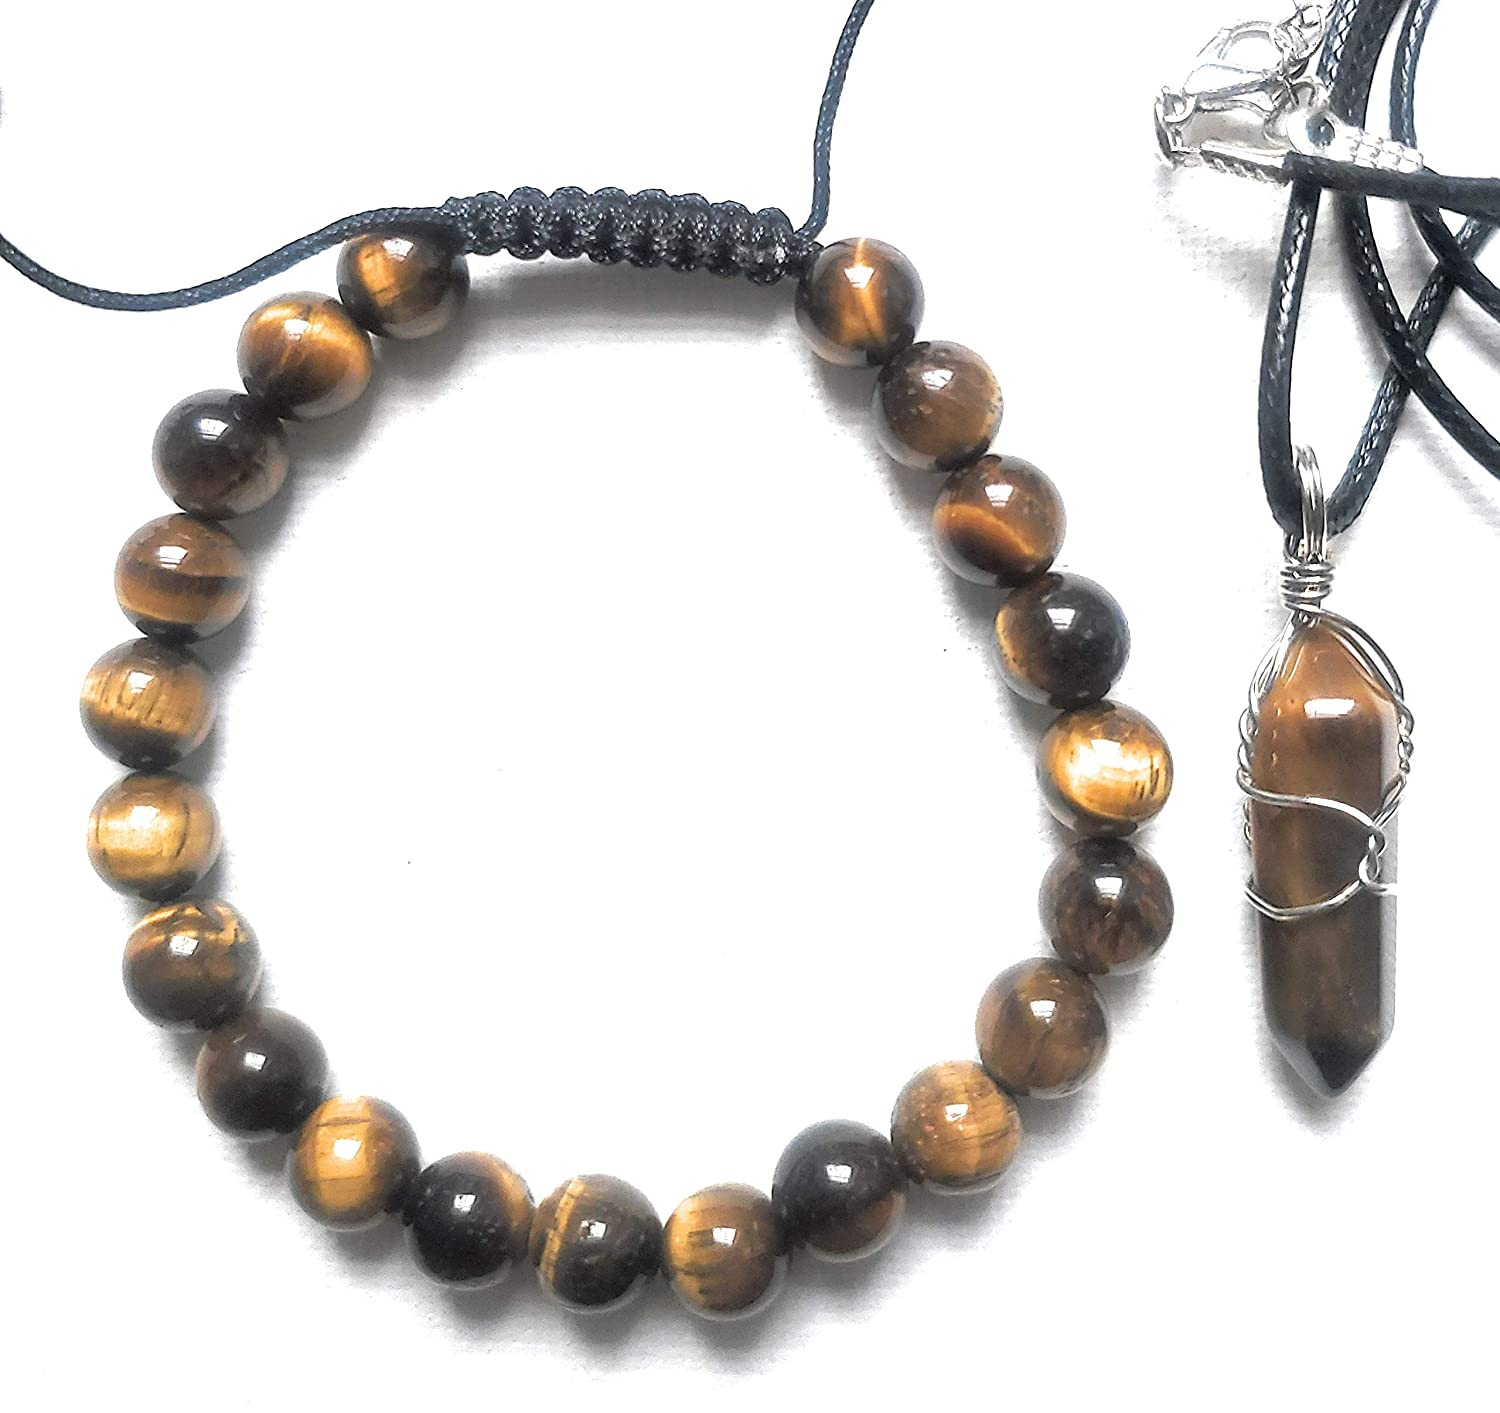 tiger eye necklace unique gifts for boyfriend golden tiger eye anniversary gift for husband unique birthday gift for men fork necklace